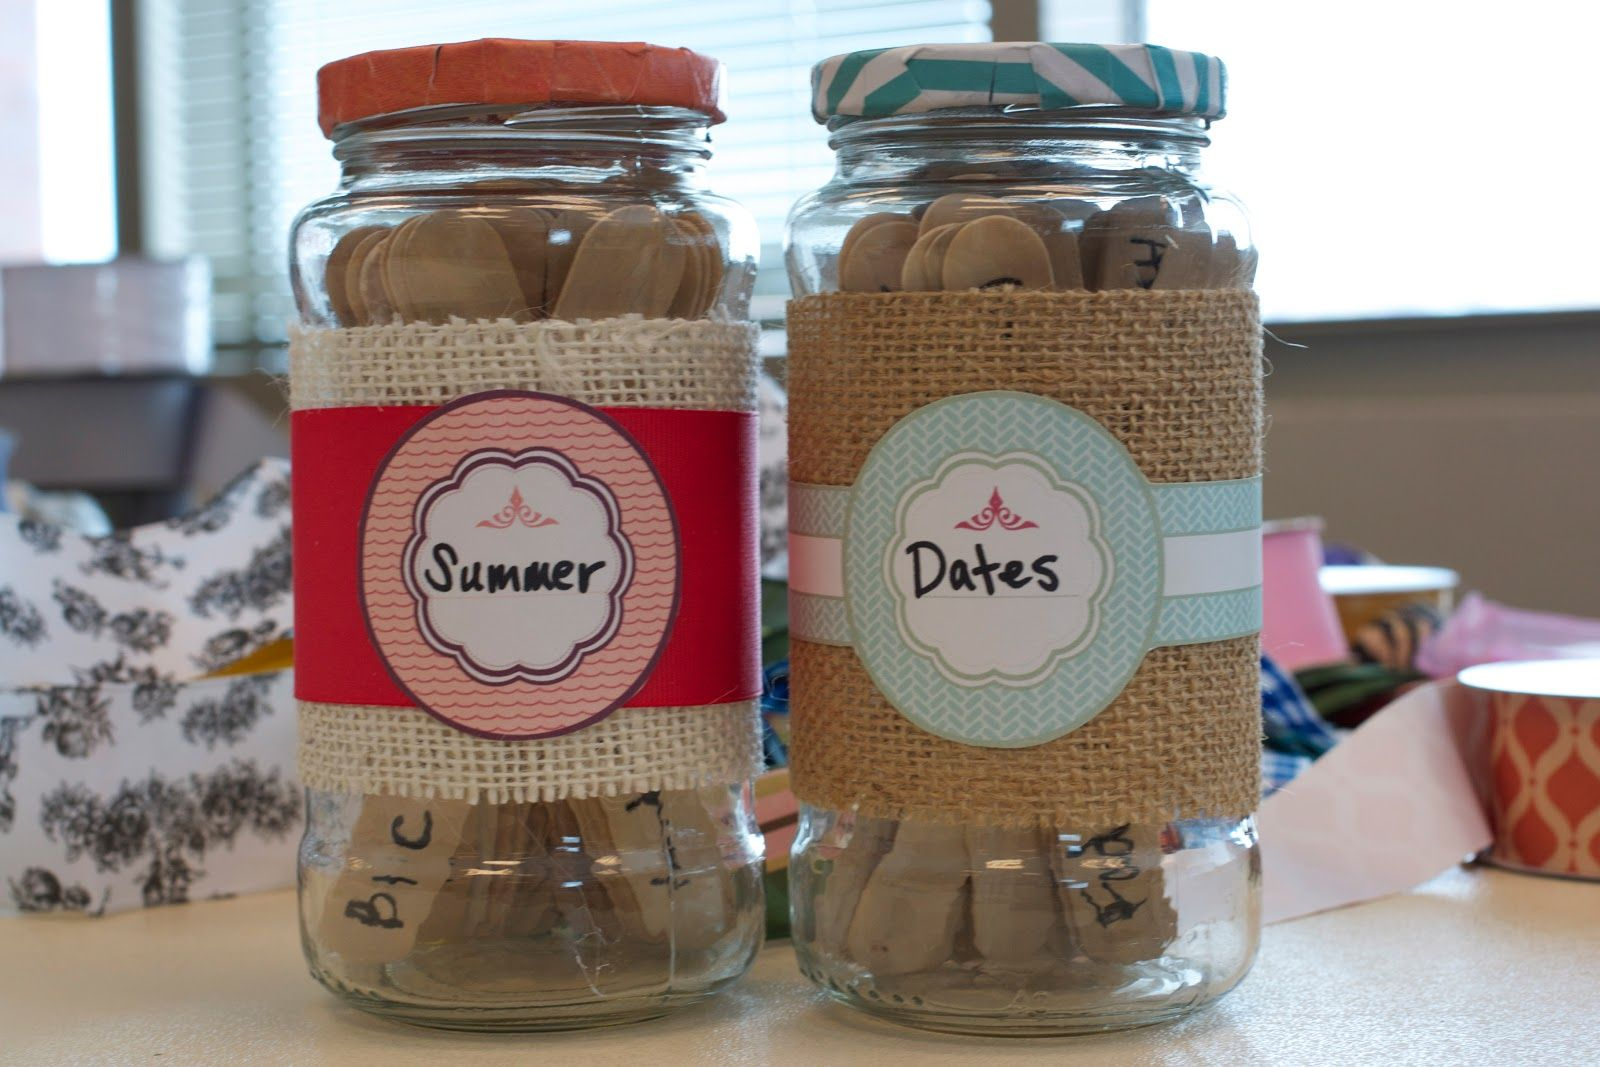 Time To Diy Mops Craft Summer Fun And Date Night Ideas Jars